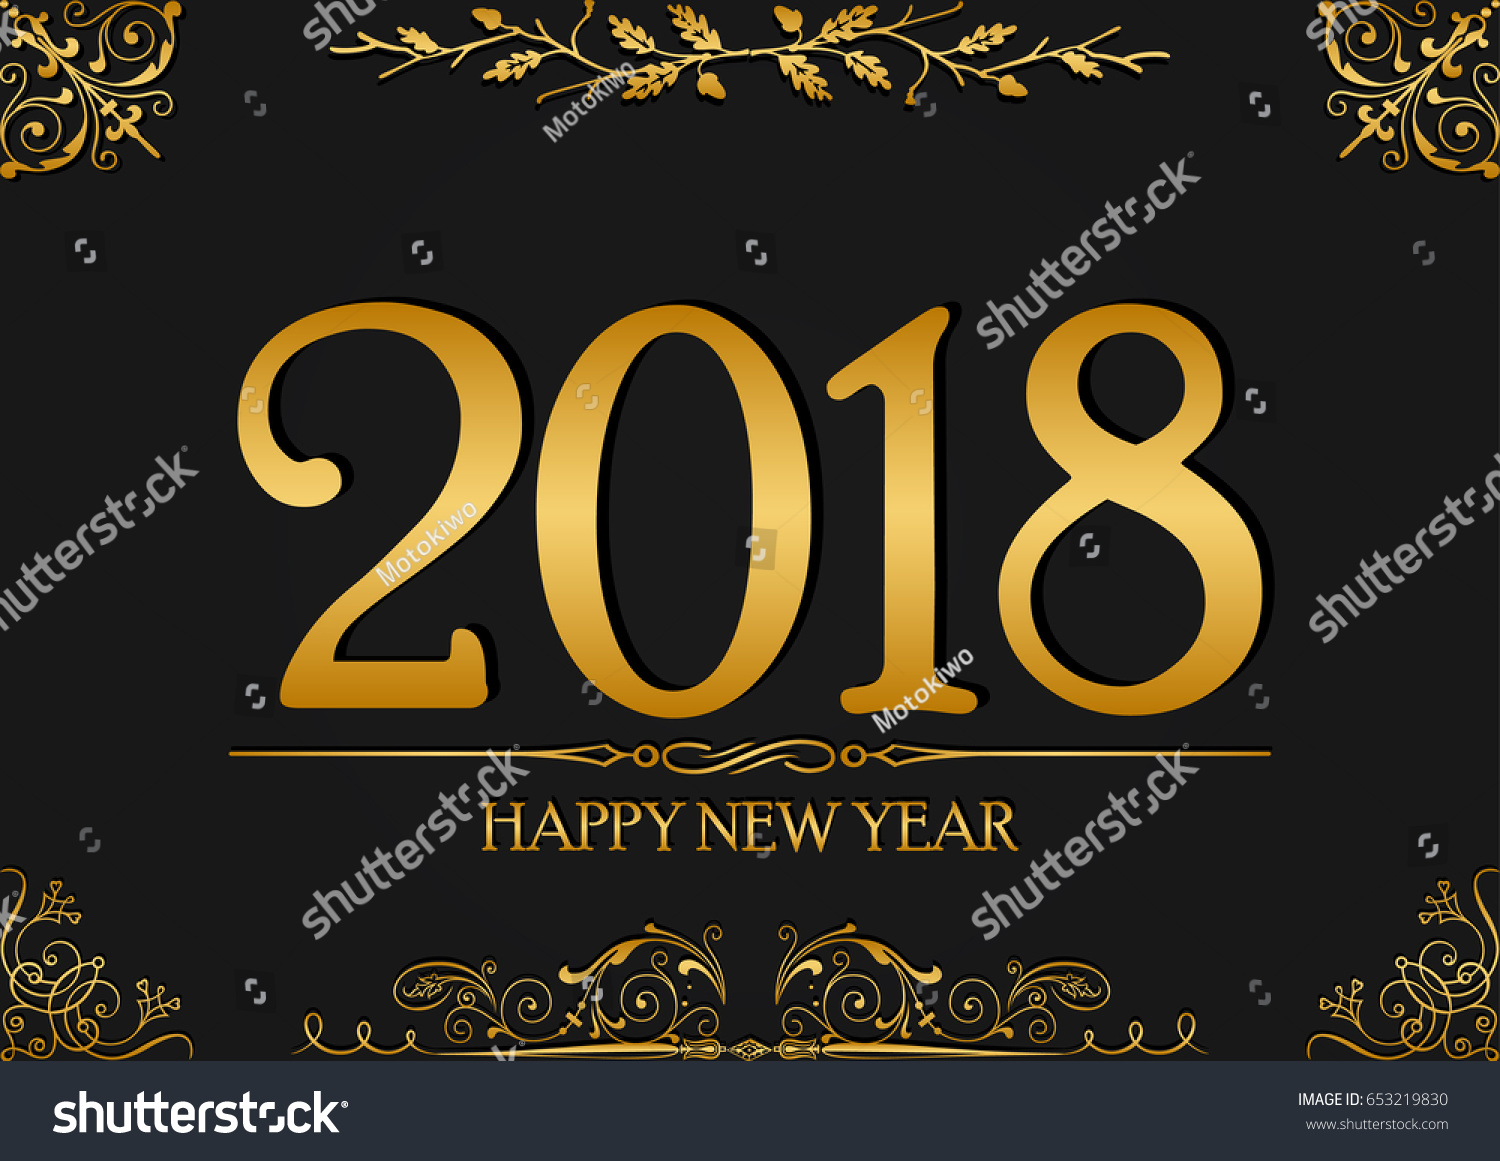 Happy new year 2018 greeting card stock vector royalty free happy new year 2018 greeting card background design luxury number and letter vector illustration design m4hsunfo